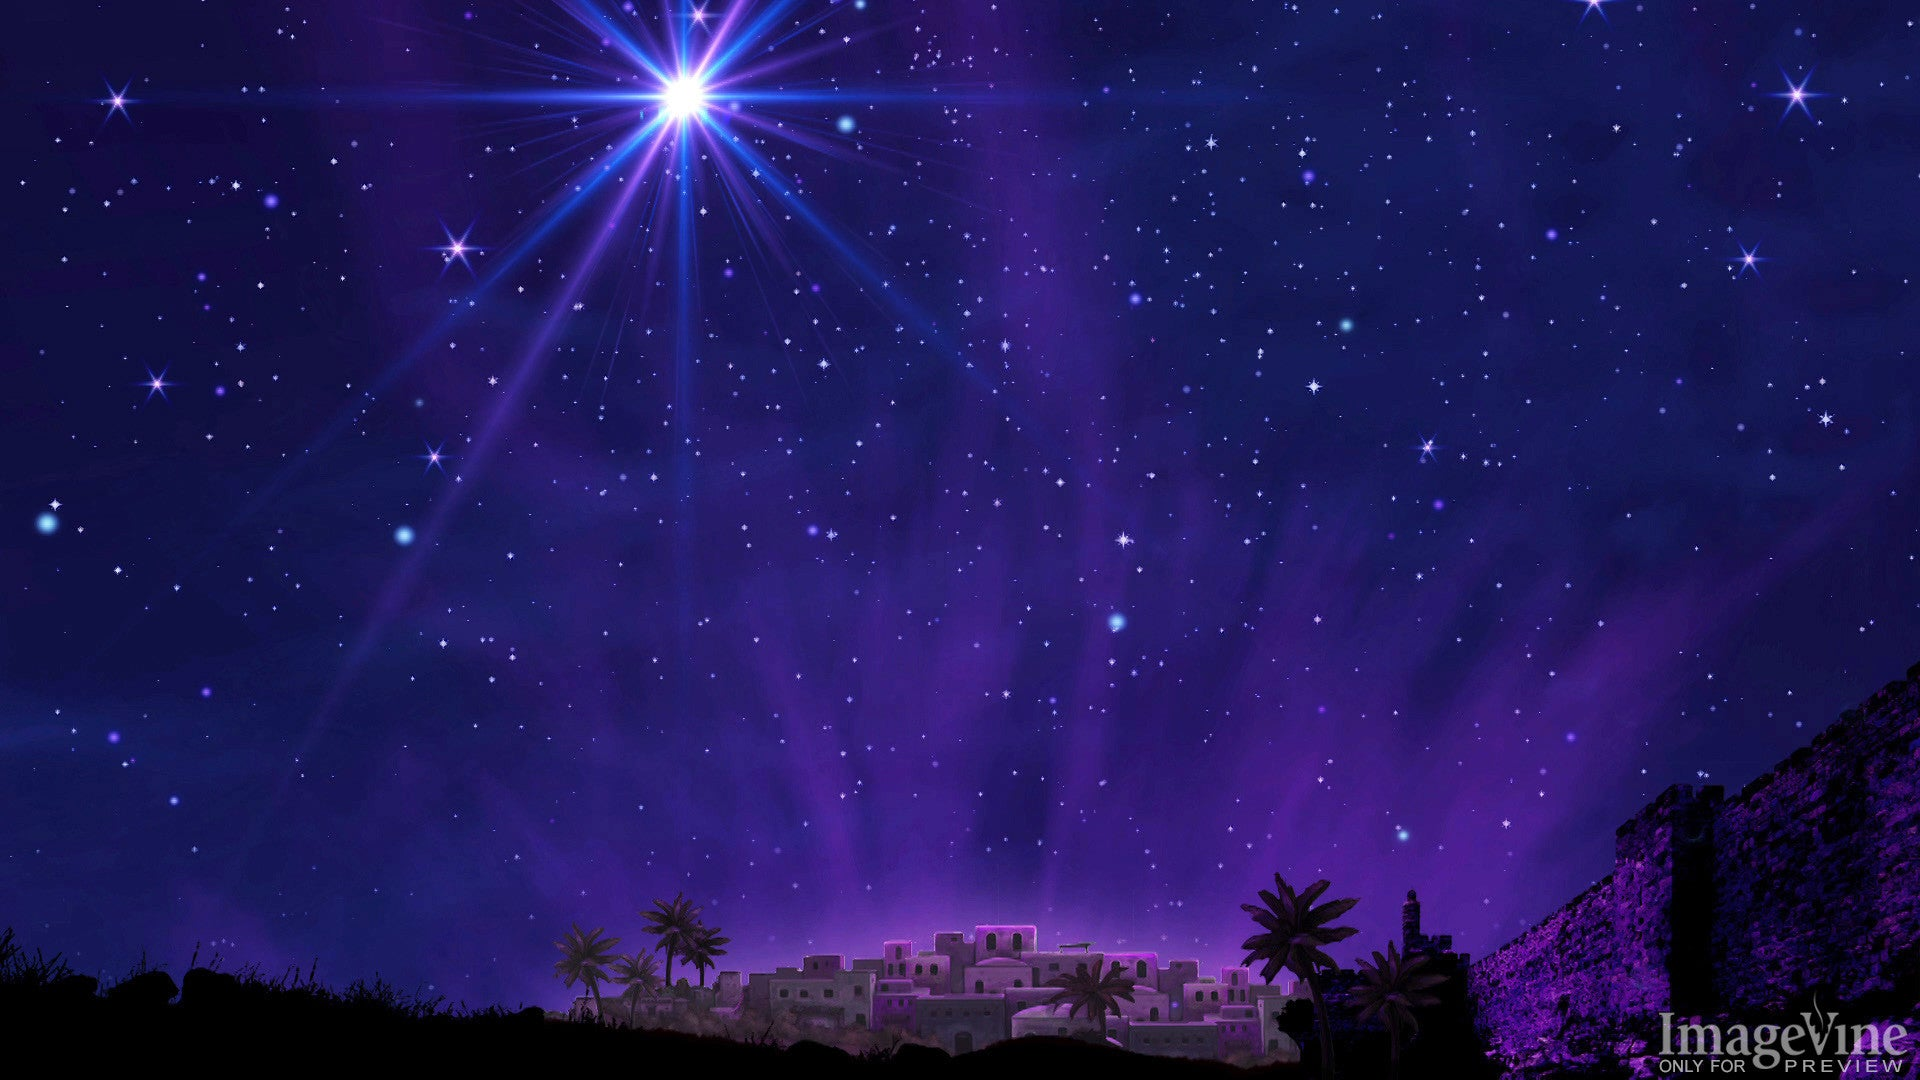 christmas eve backgrounds, bethlehem, star, night sky